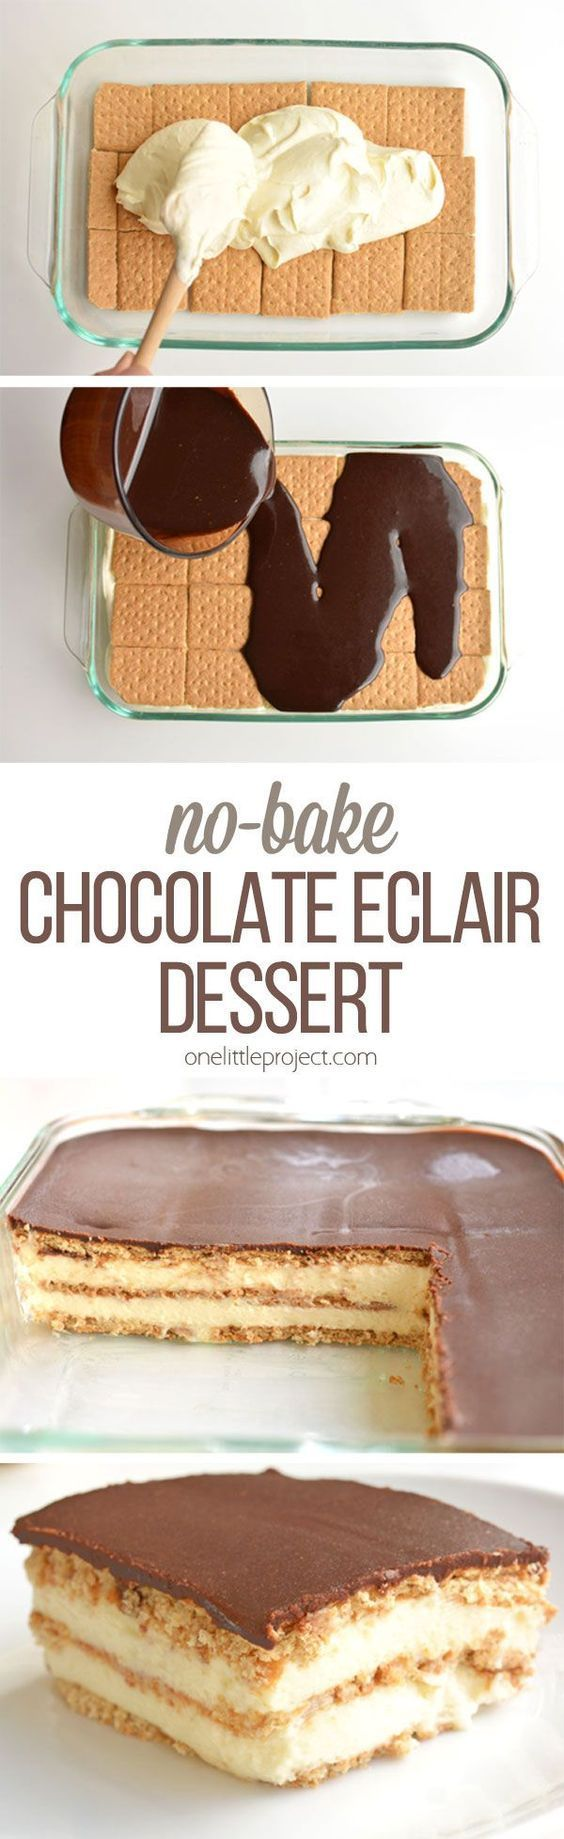 This chocolate eclair cake is such an easy dessert! And it tastes AMAZING with its creamy and delicious layers!! Just like a chocolate eclair but in a cake. Mmmmm...